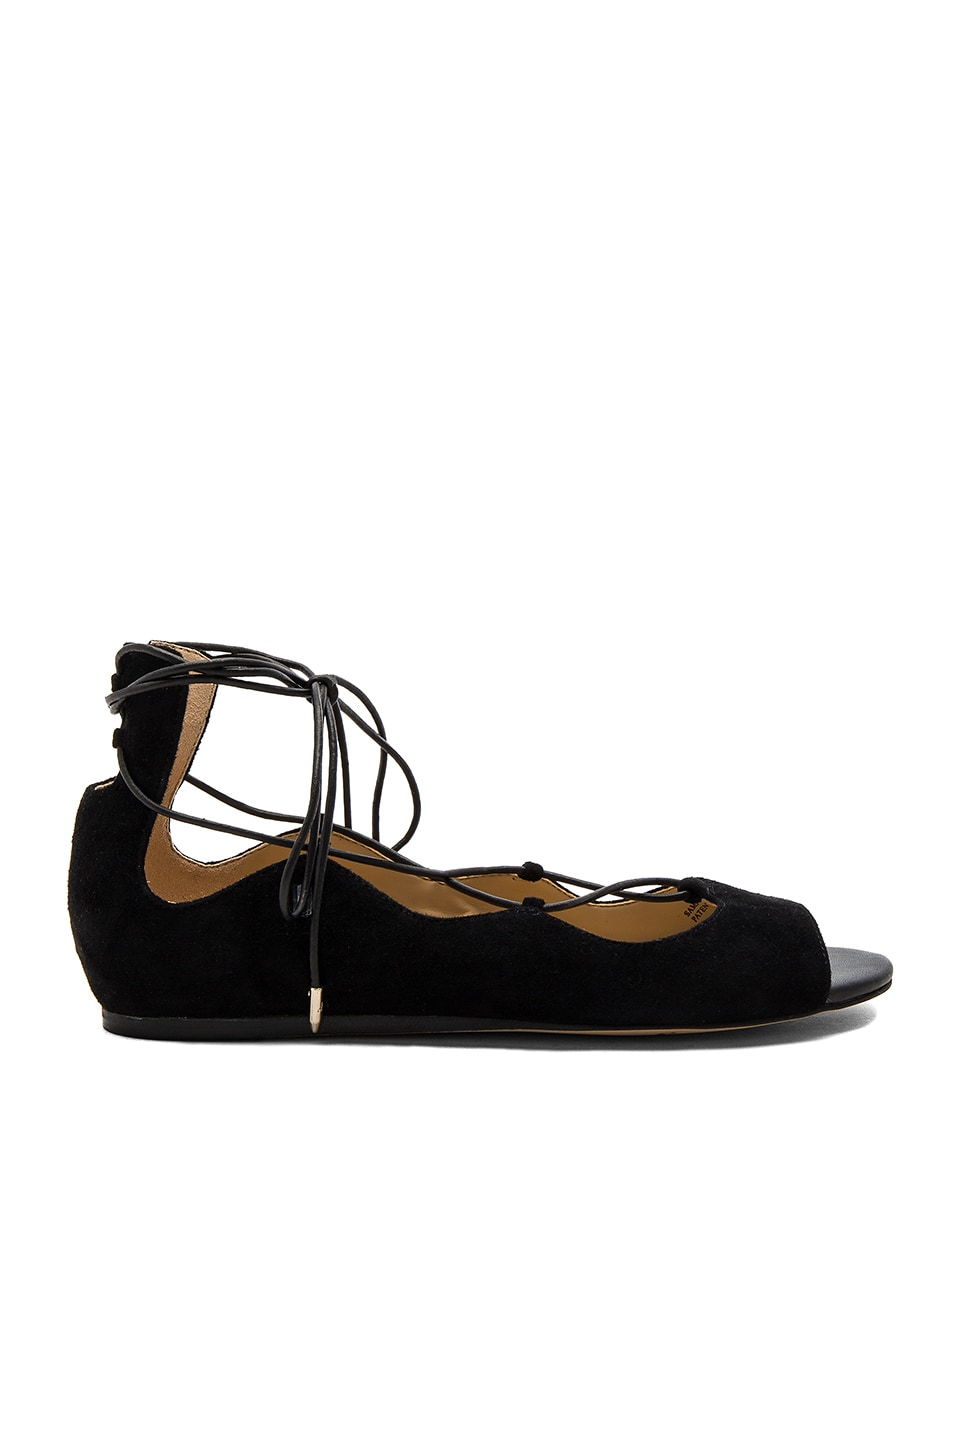 Barbara Flat by Sam Edelman